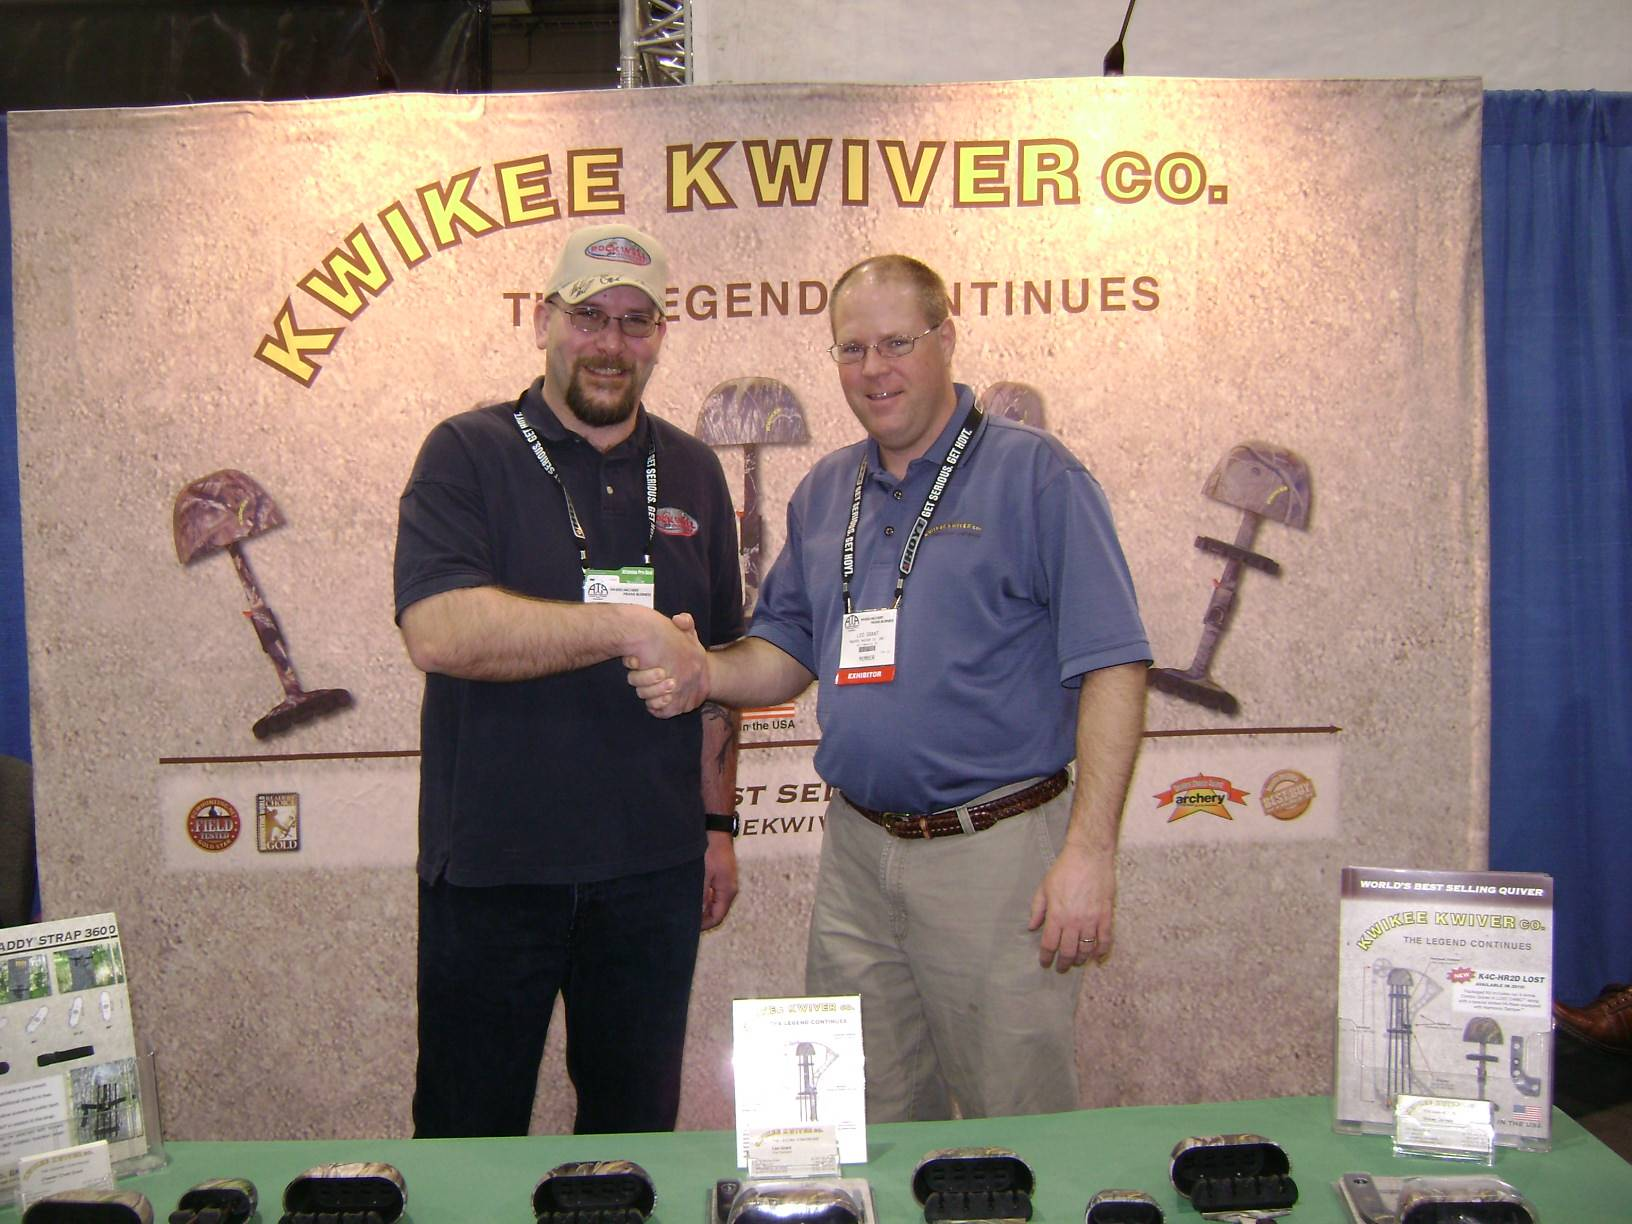 Mark with Mr. Grant from Kwikee Kwiver